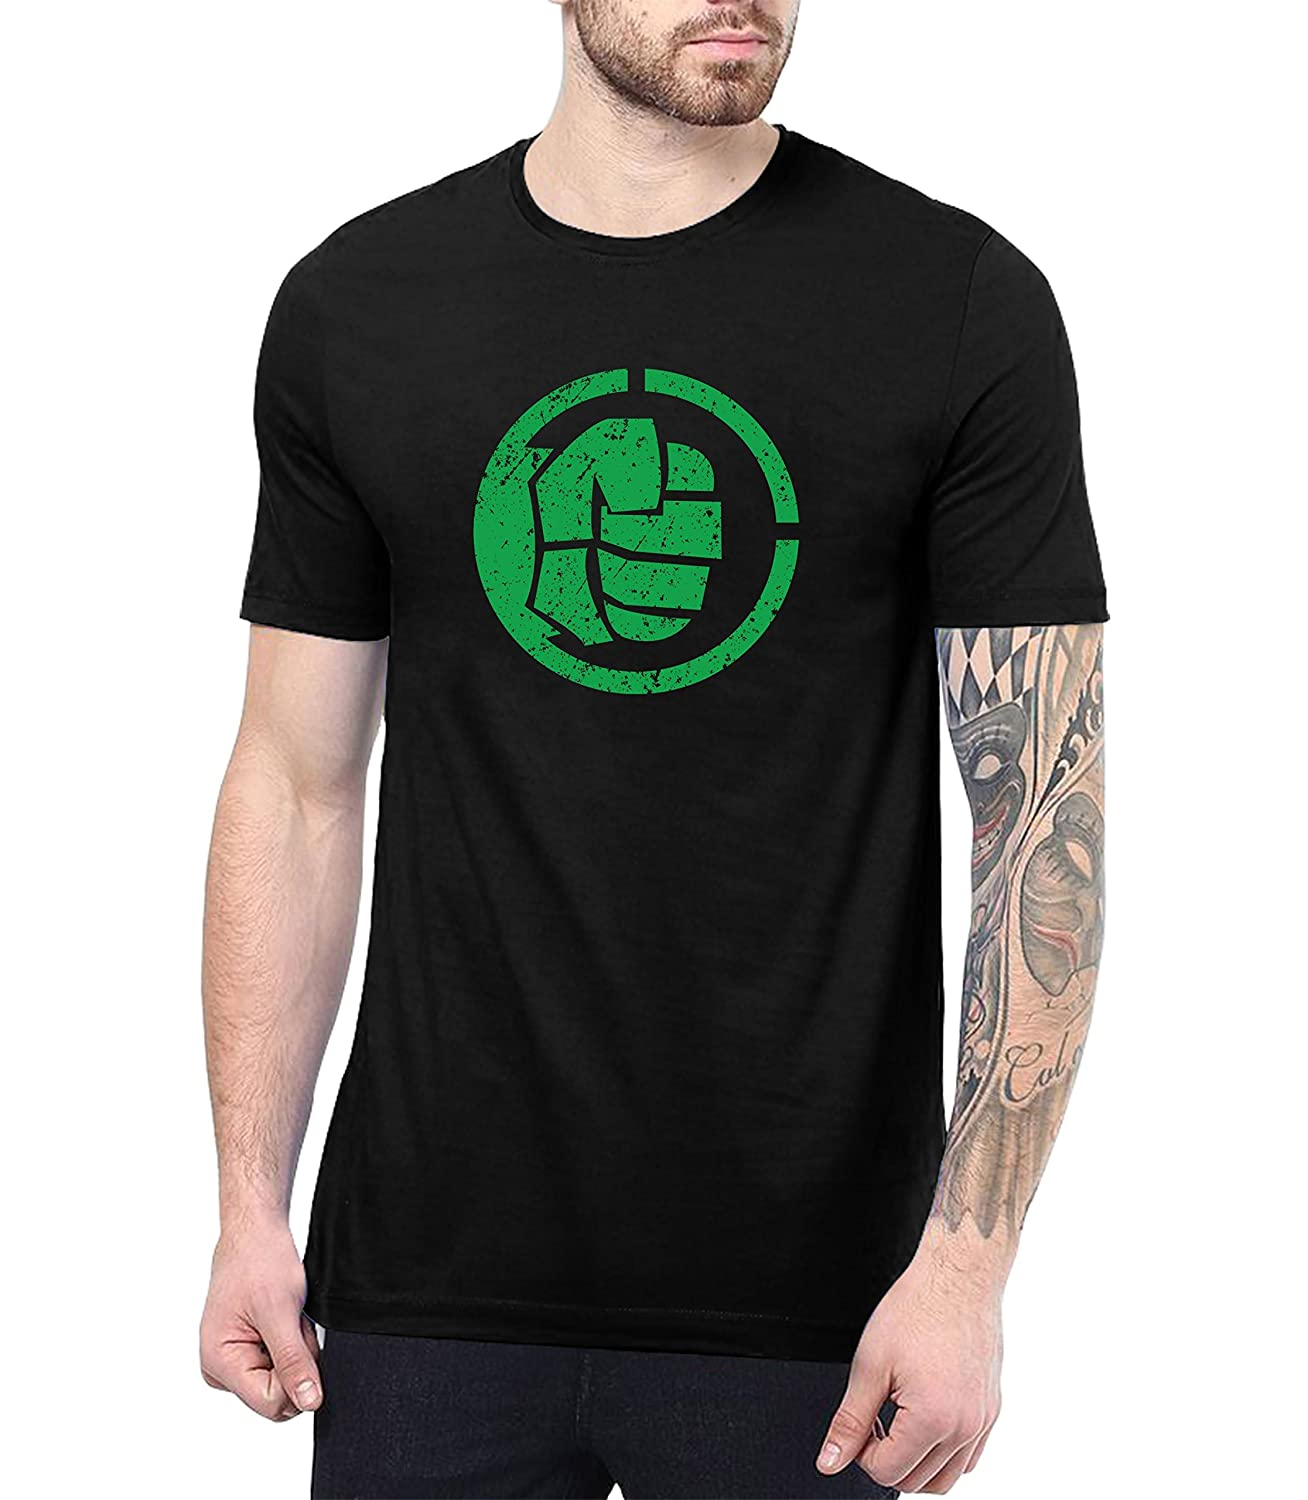 6f8b8f472 You can expect lasting durability with this 100% cotton, unisex adult T  shirt; our designs are printed on the highest quality brand T shirts.